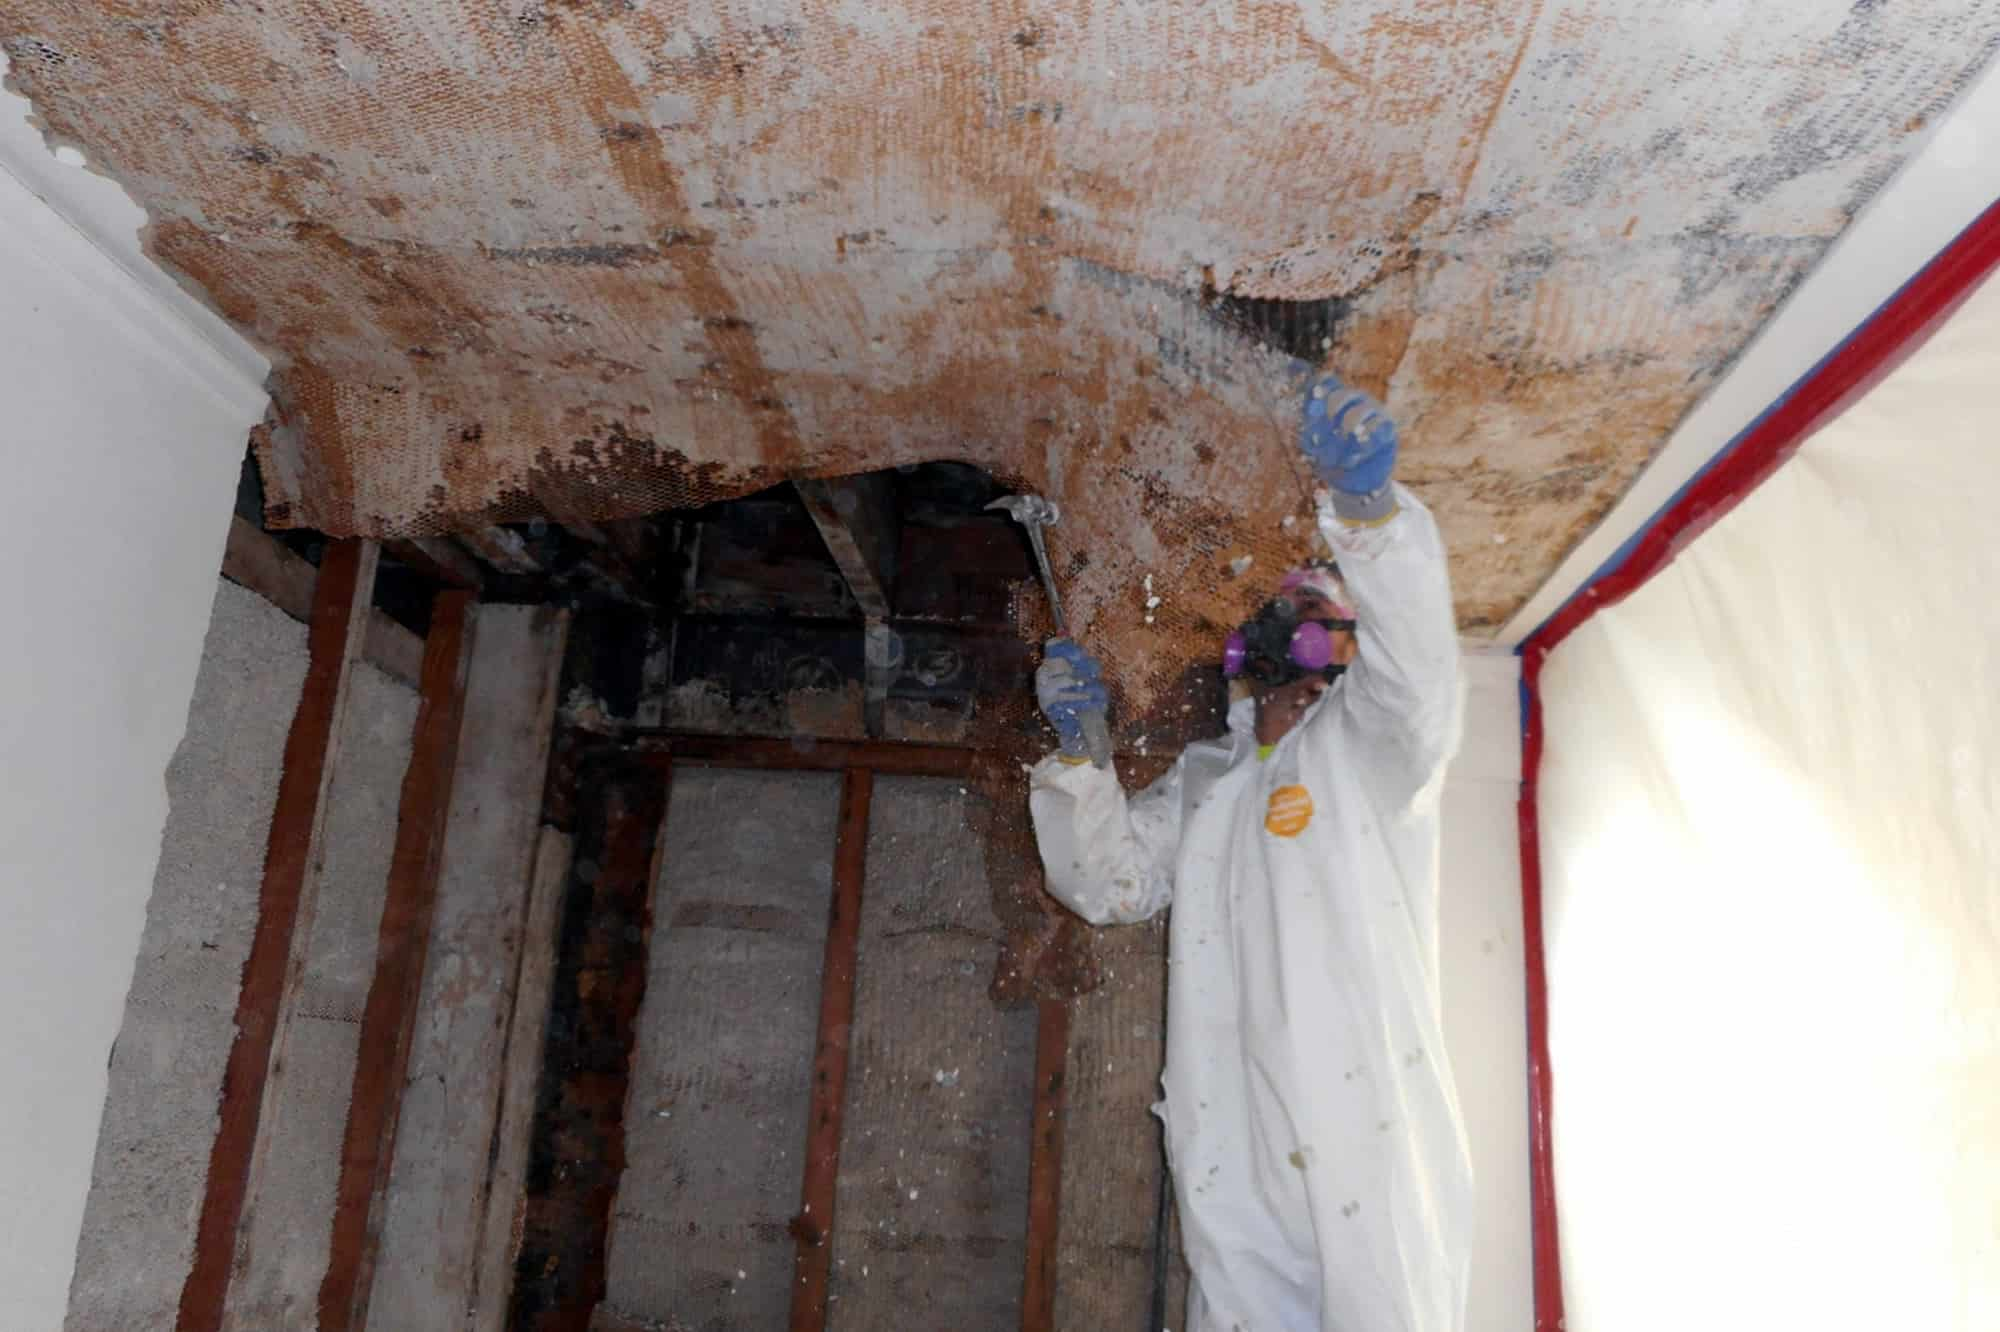 Powers Environmental specialists safely remove asbestos, which can be found in popcorn ceilings